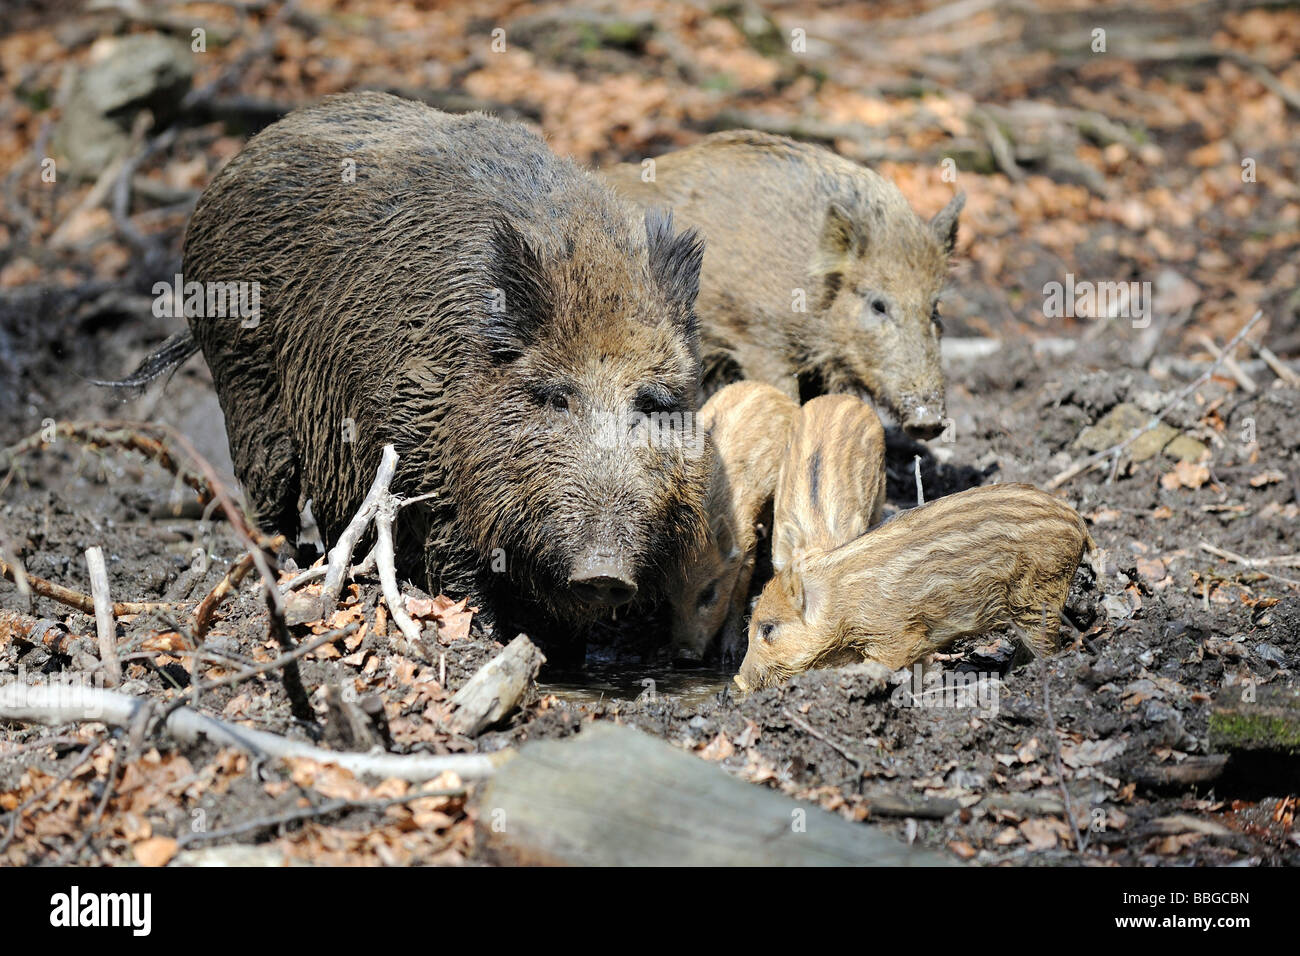 Wild boar (Sus scrofa) and piglets - Stock Image